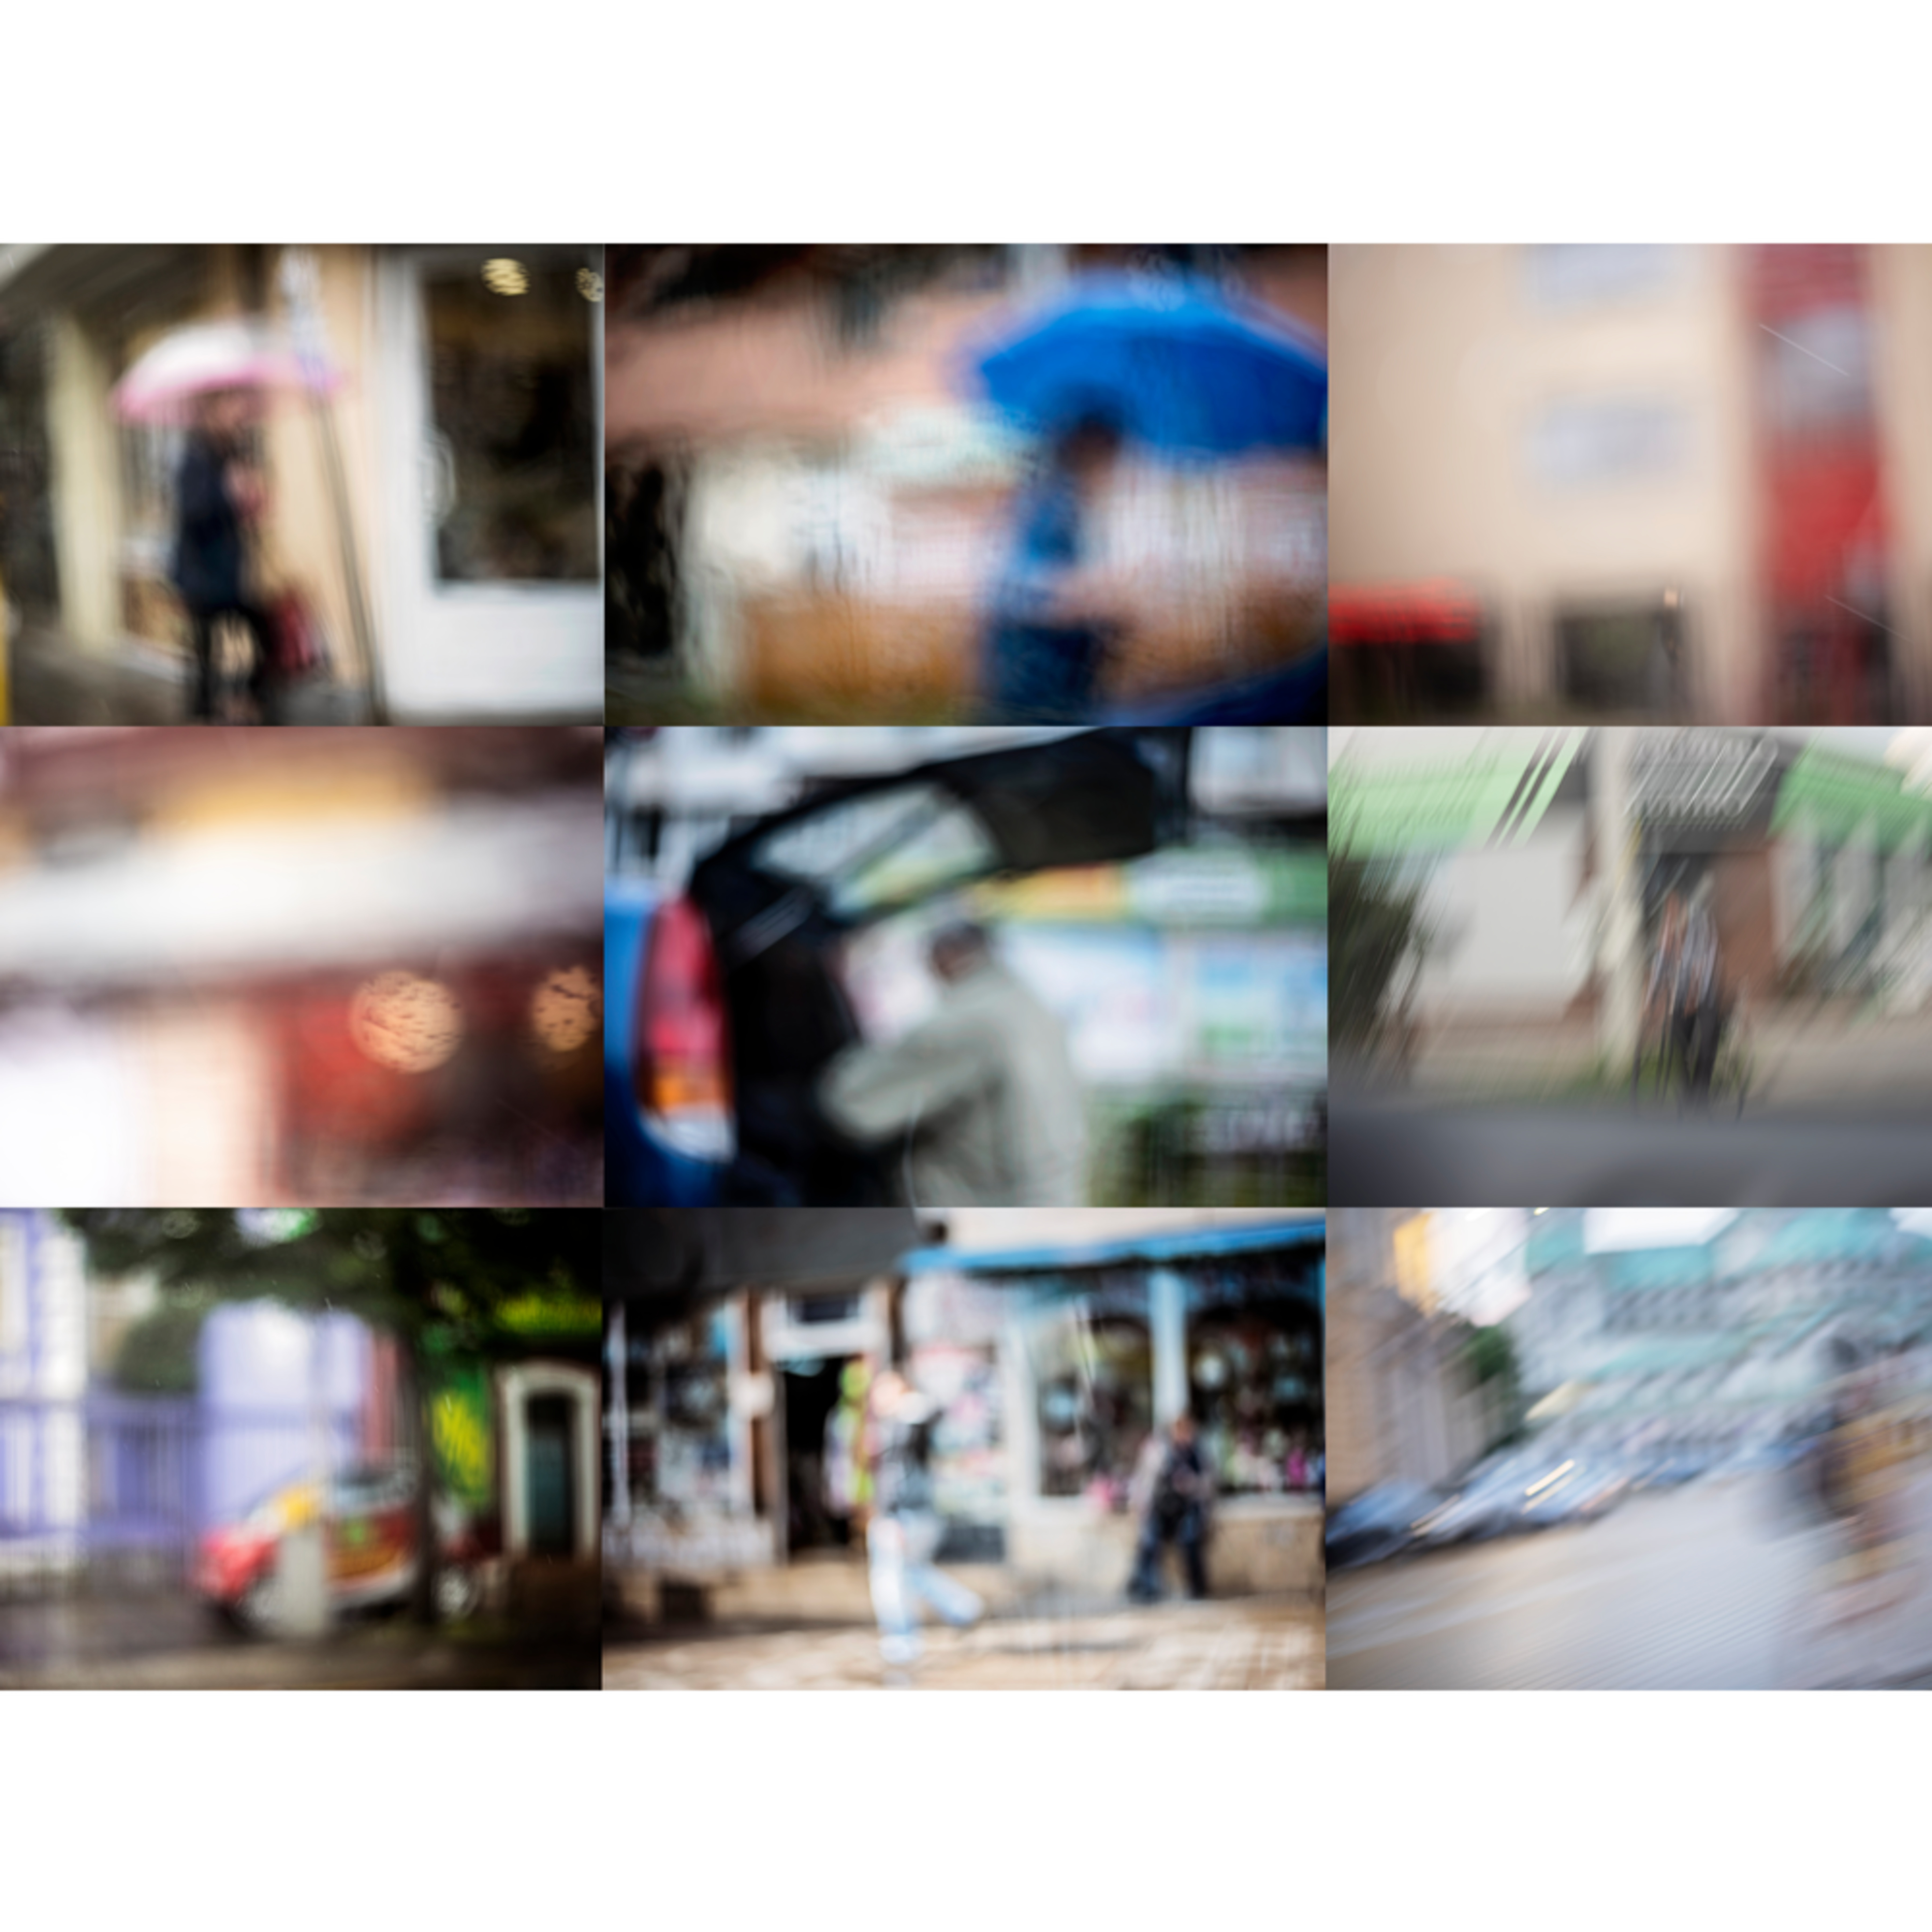 Streets collage abstract street photography fine art print silvia nikolov tjjumg